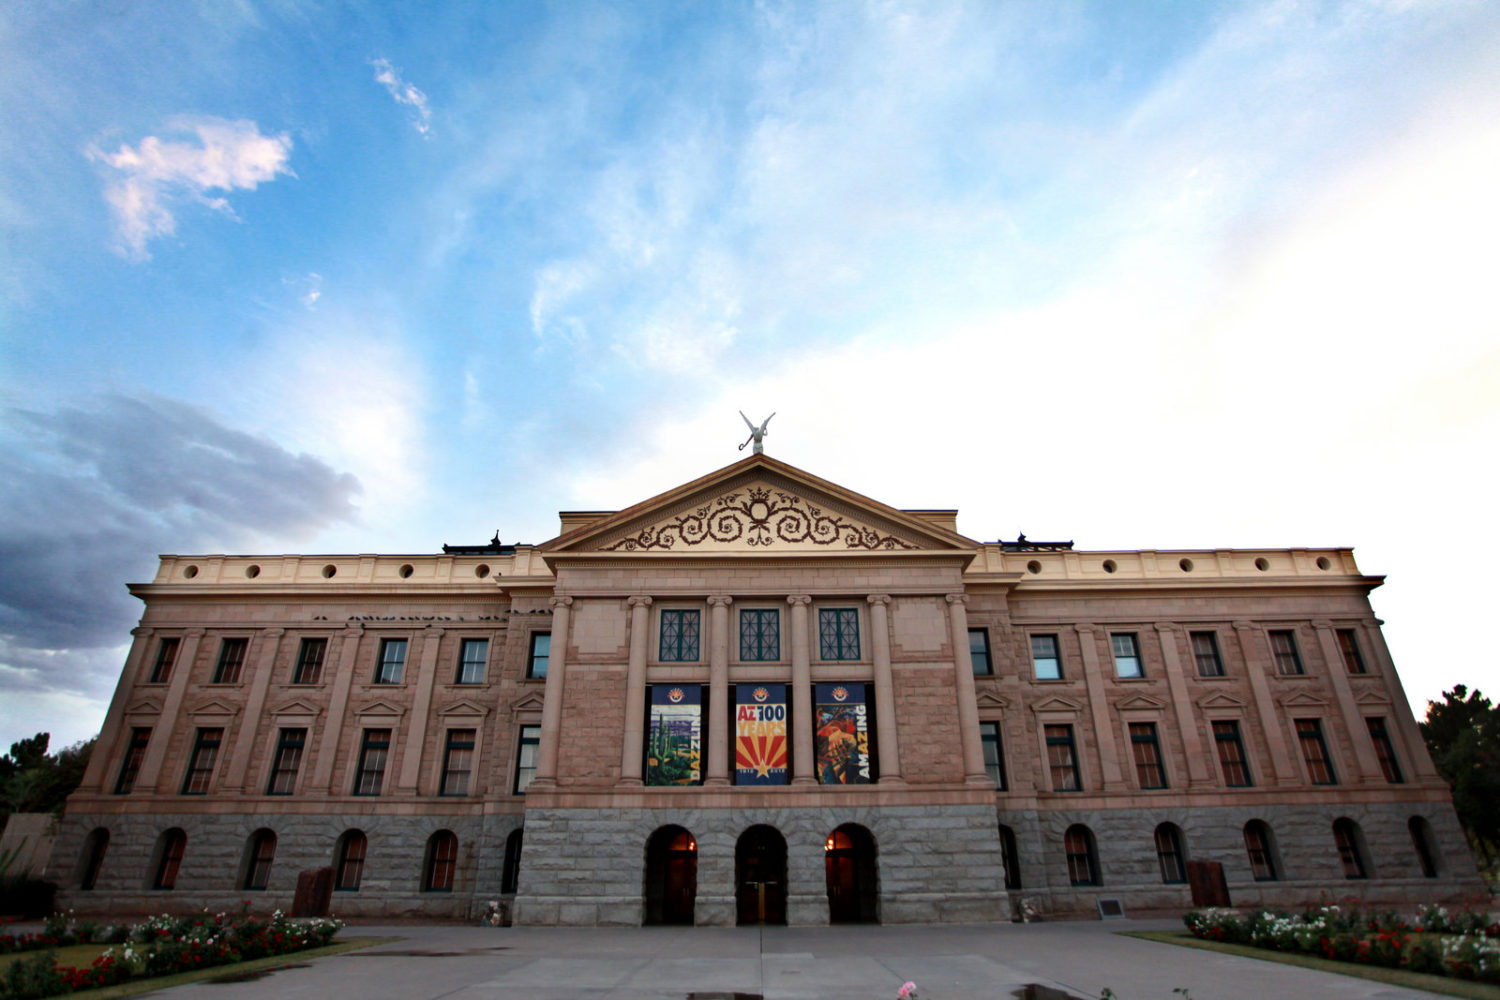 The Arizona State Capitol in Phoenix, Arizona, United States